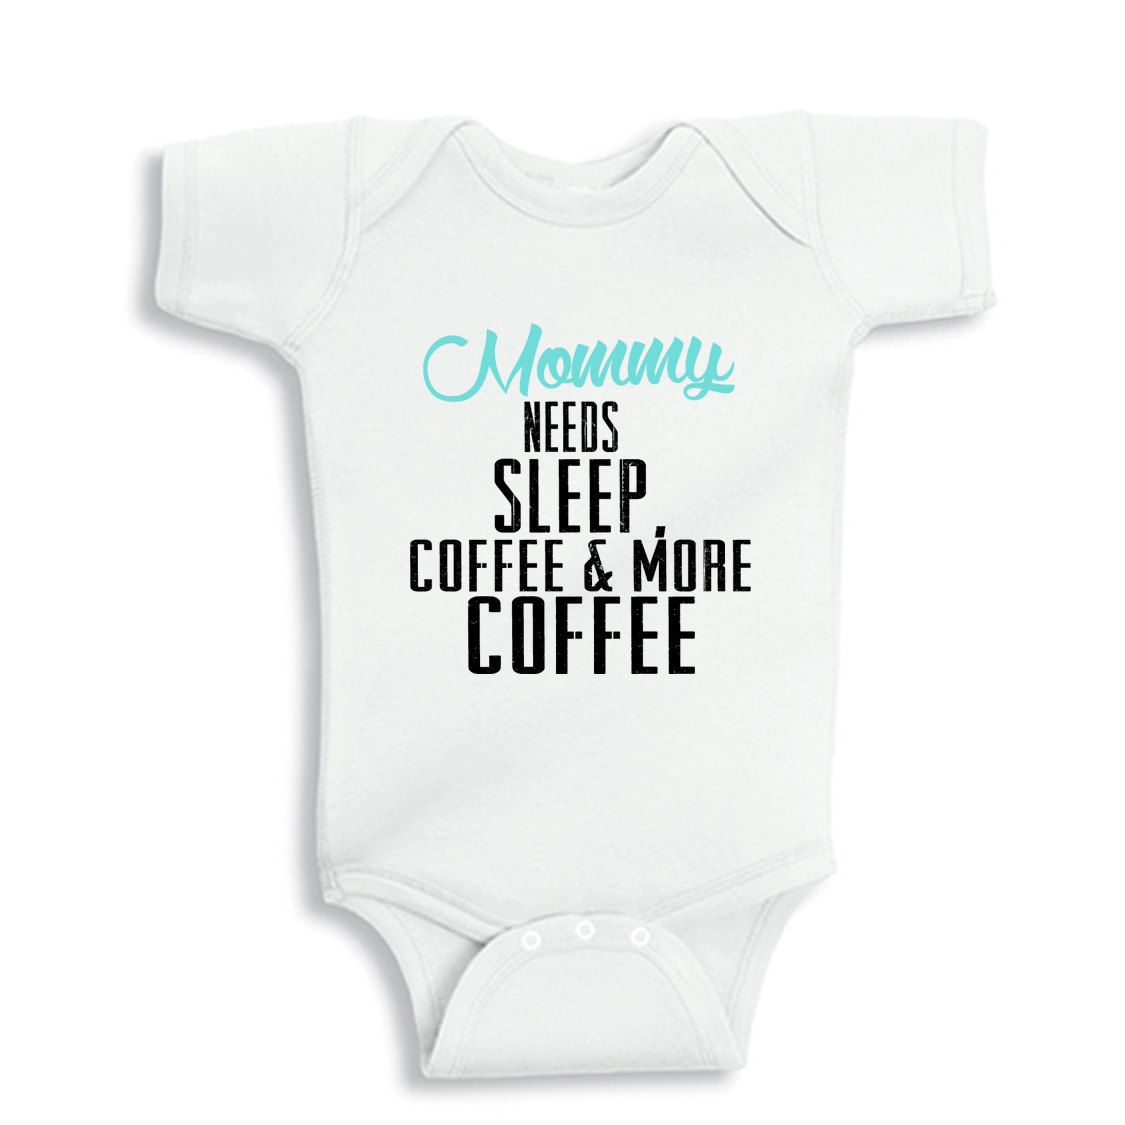 0c4e74ba2 Mommy needs Sleep, Coffee and More Coffee Personalized baby bodysuit by  bodysuitsbynany on Etsy